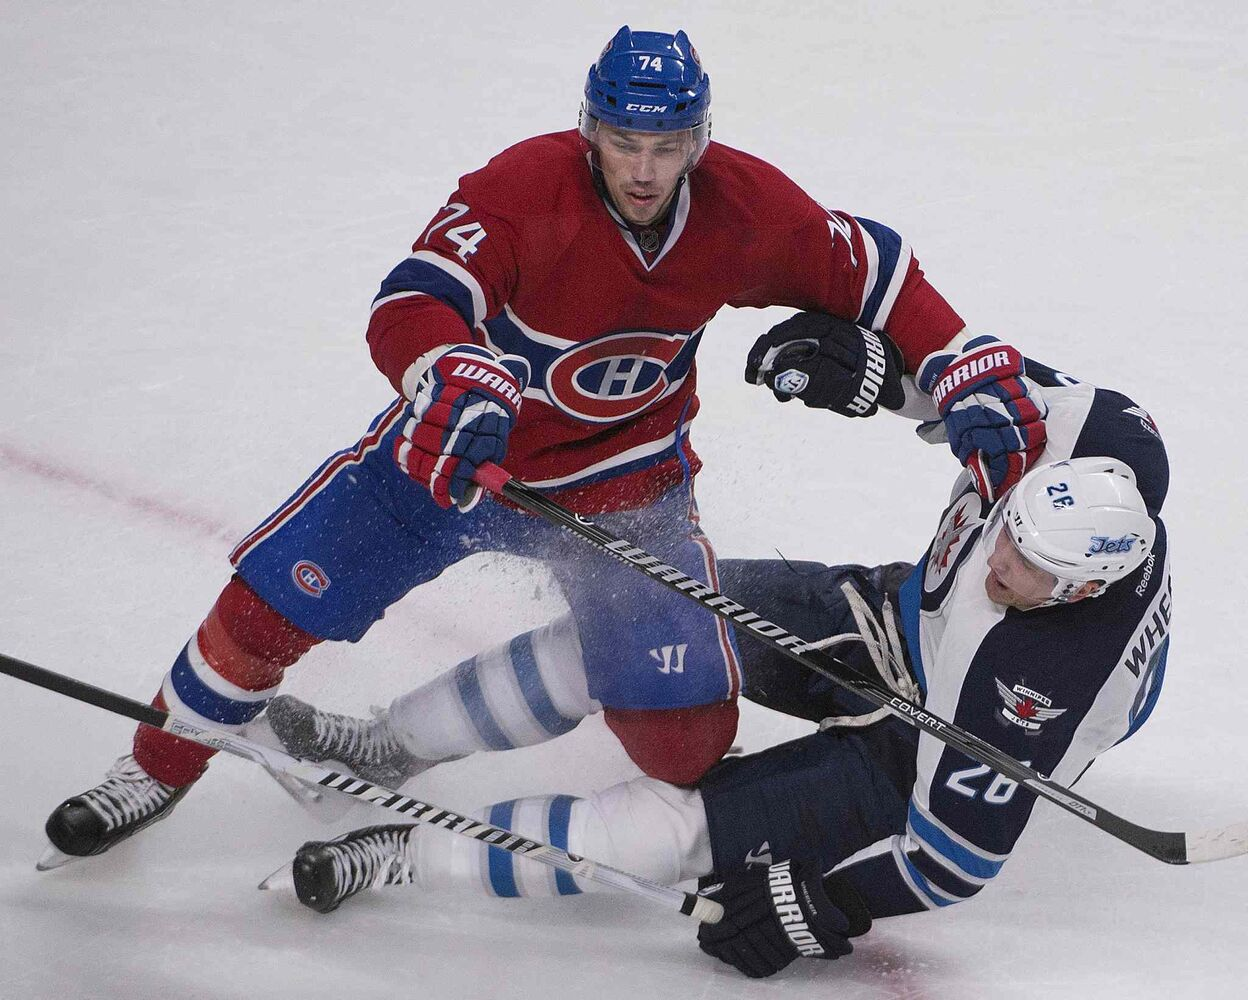 Jets leading scorer Blake Wheeler falls being hit by Montreal Canadiens' Alexei Emelin.